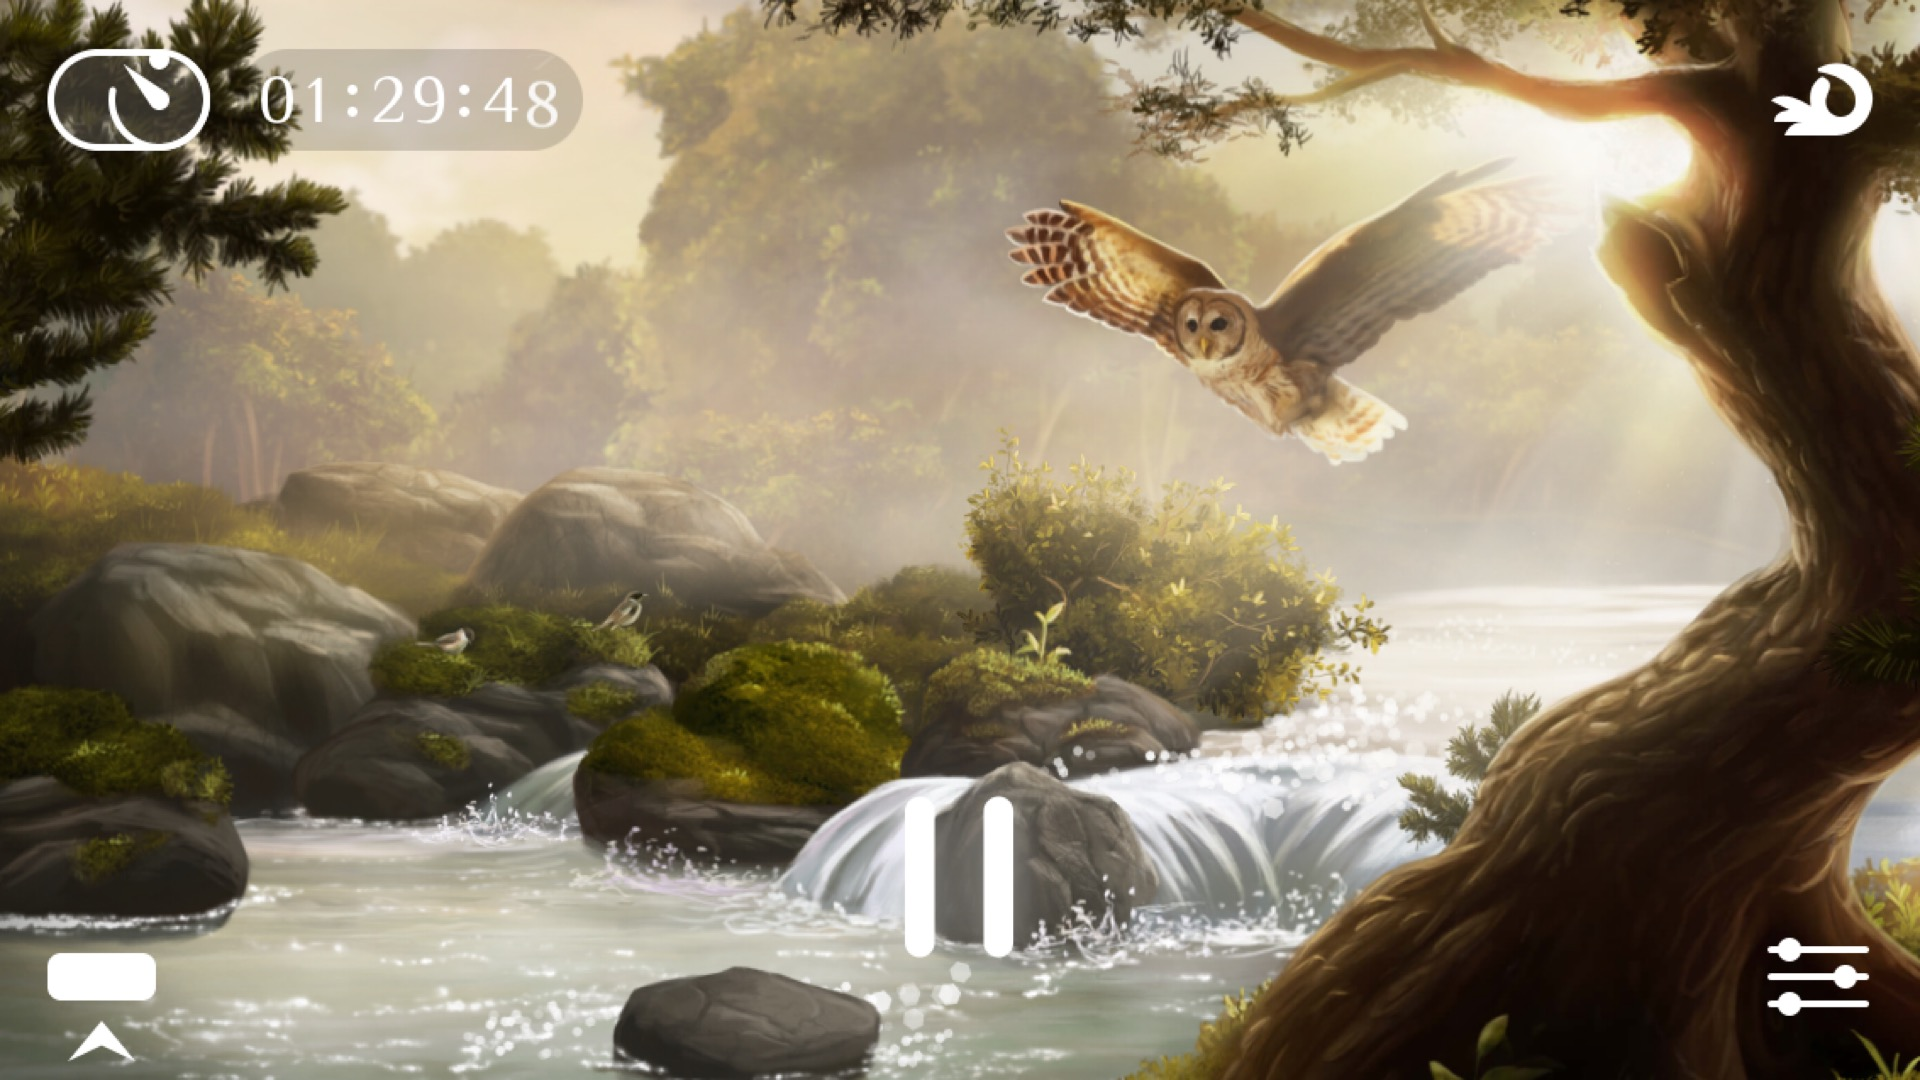 REVIEW: Flowing ~ Meditation & Mindfulness (iOS)